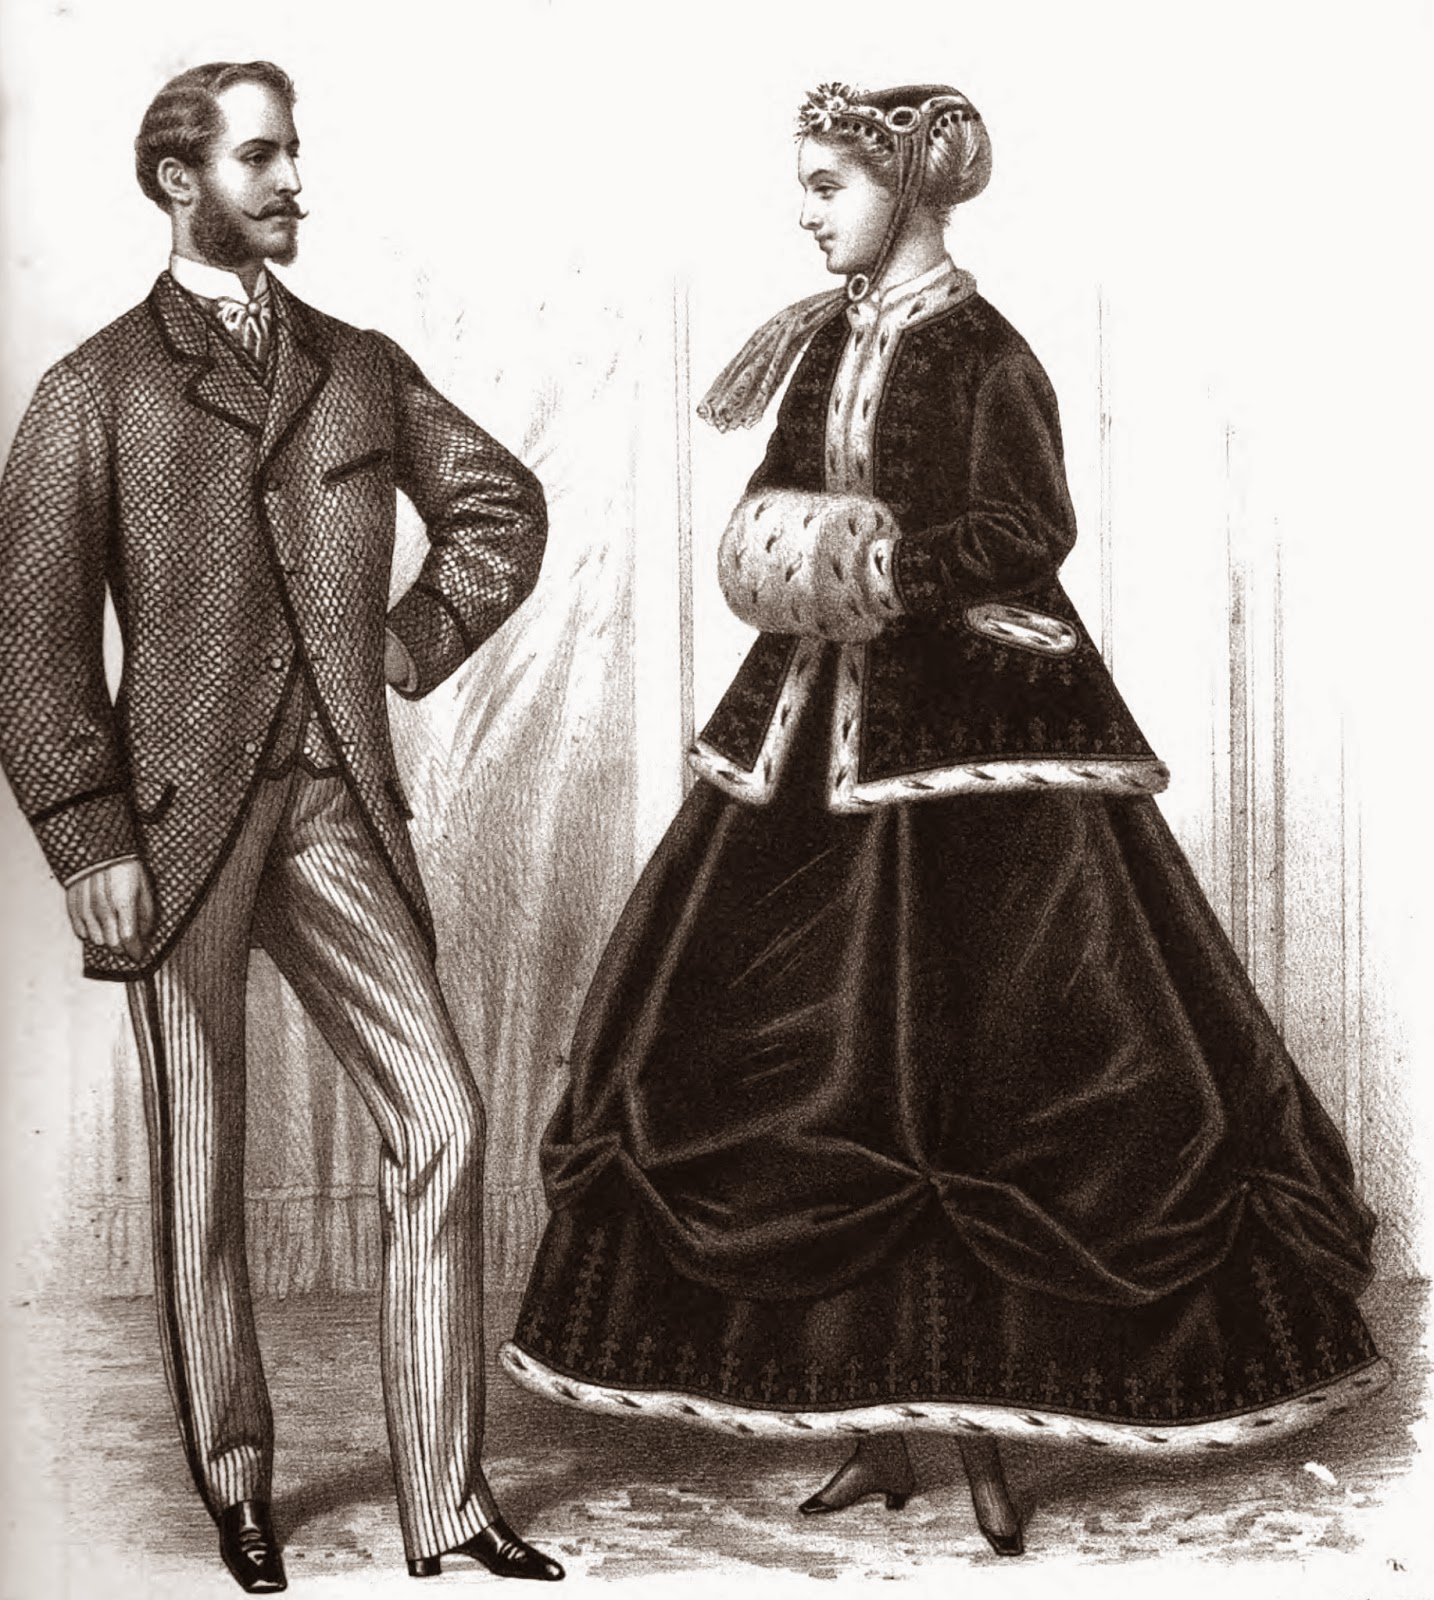 Historical: 19th Century Historical Tidbits: 1867 Historical Fashions